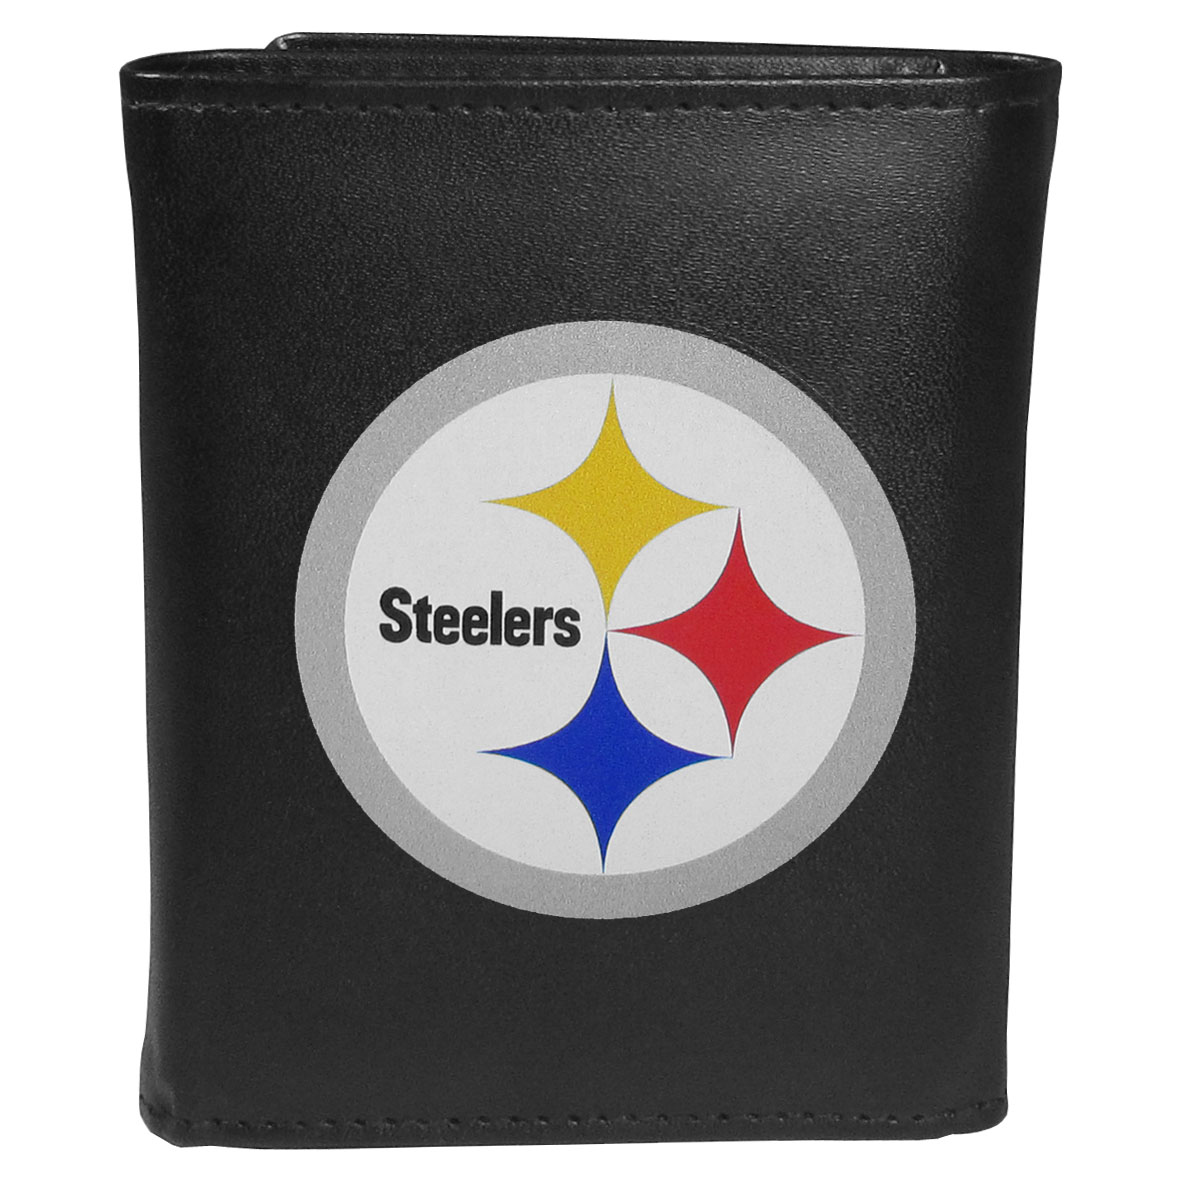 Pittsburgh Steelers Leather Tri-fold Wallet, Large Logo - Our classic fine leather tri-fold wallet is meticulously crafted with genuine leather that will age beautifully so you will have a quality wallet for years to come. This is fan apparel at its finest. The wallet is packed with organizational  features; lots of credit card slots, large billfold pocket, and a window ID slot. The front of the wallet features an extra large Pittsburgh Steelers printed logo.